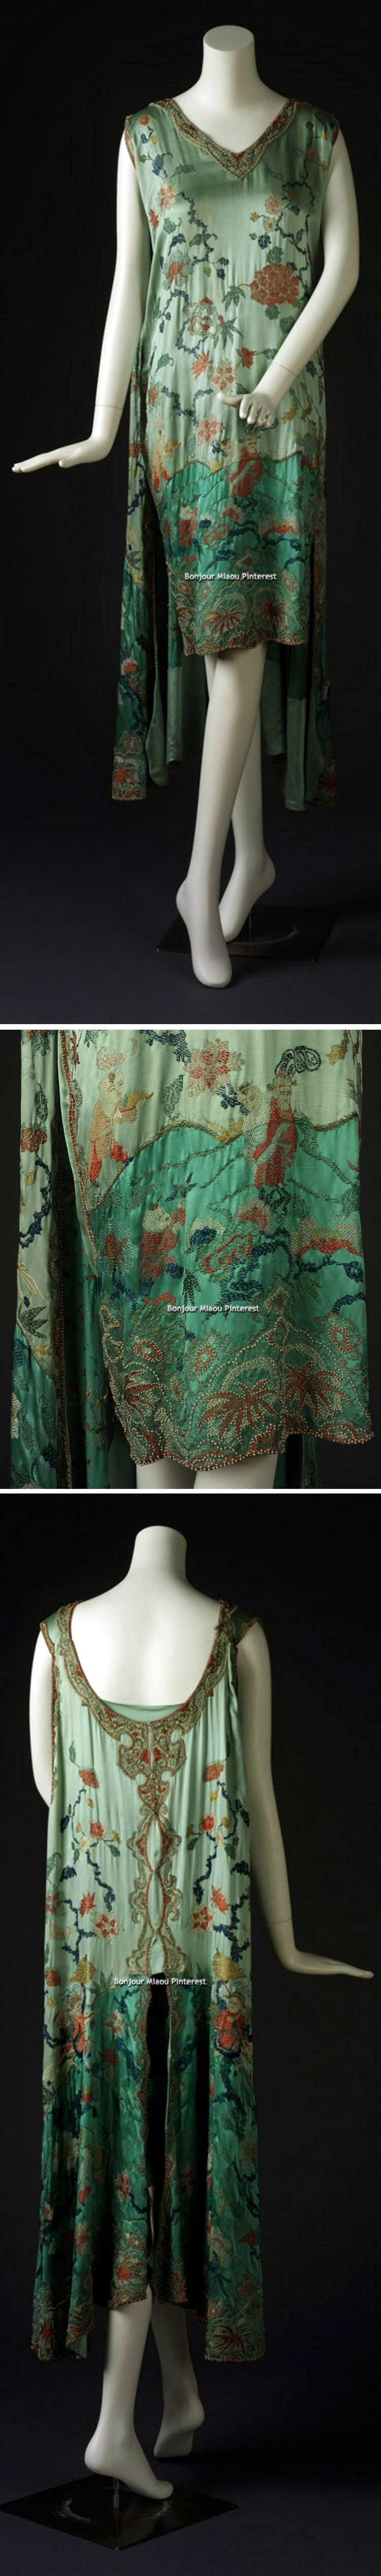 Evening dress, Eugenie et Juliette, ca. 1926-28. One-piece green satin, sleeveless dress. Embroidered back panel attached at the shoulder seam. Rhode Island School of Design Museum